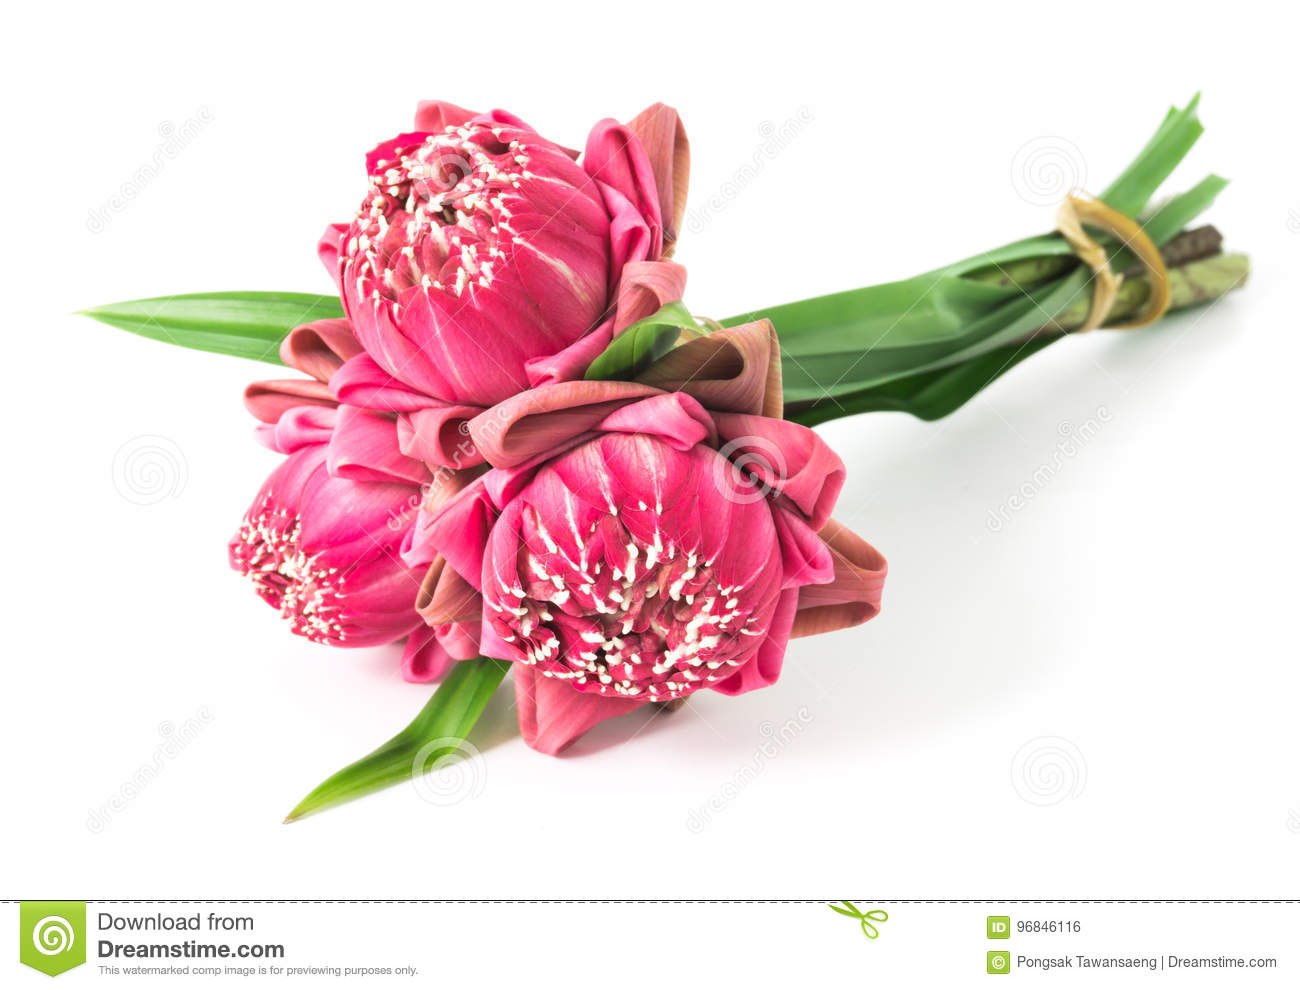 Buddhist pink lotus flower offerings to gods stock photo image of download buddhist pink lotus flower offerings to gods stock photo image of religion offering mightylinksfo